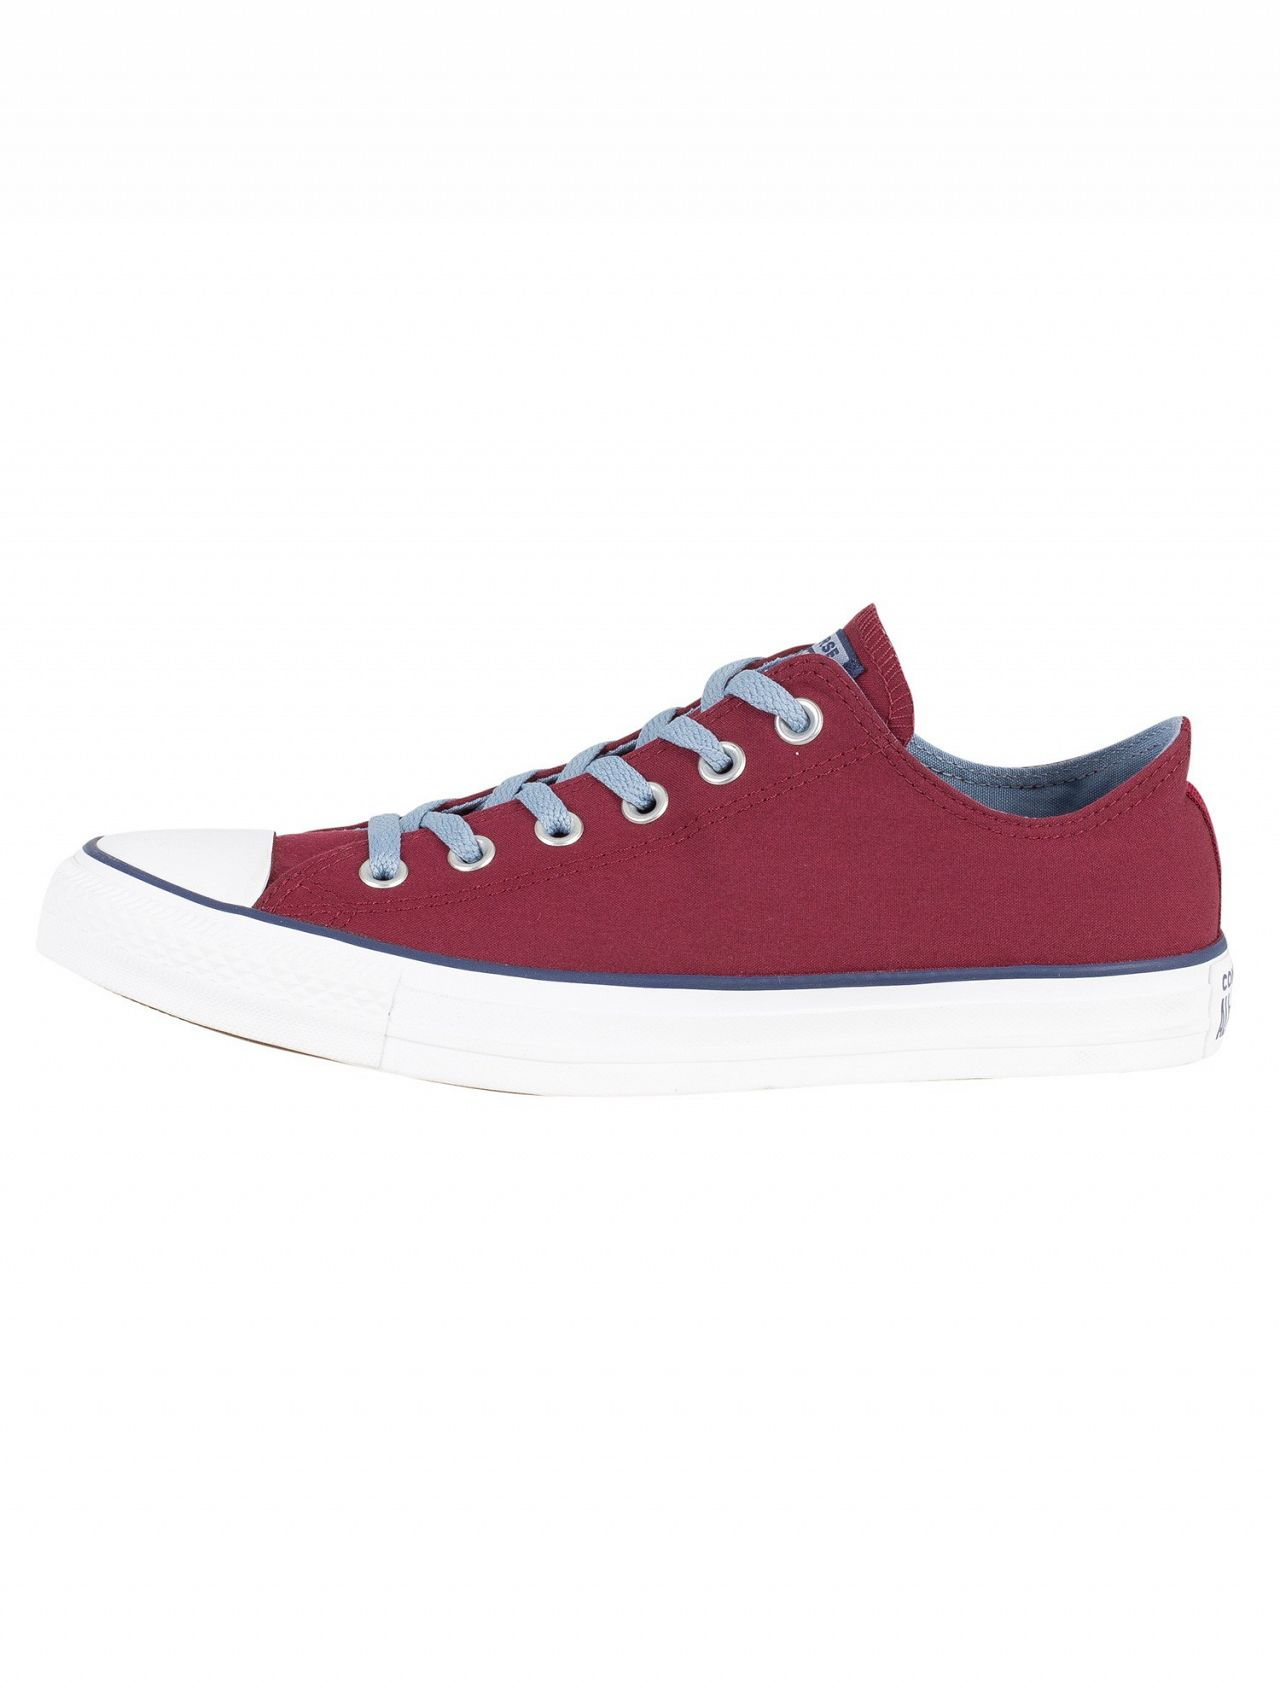 bf04047a179d0 Converse Dark Burgundy Washed Denim CT All Star Ox Canvas Trainers ...